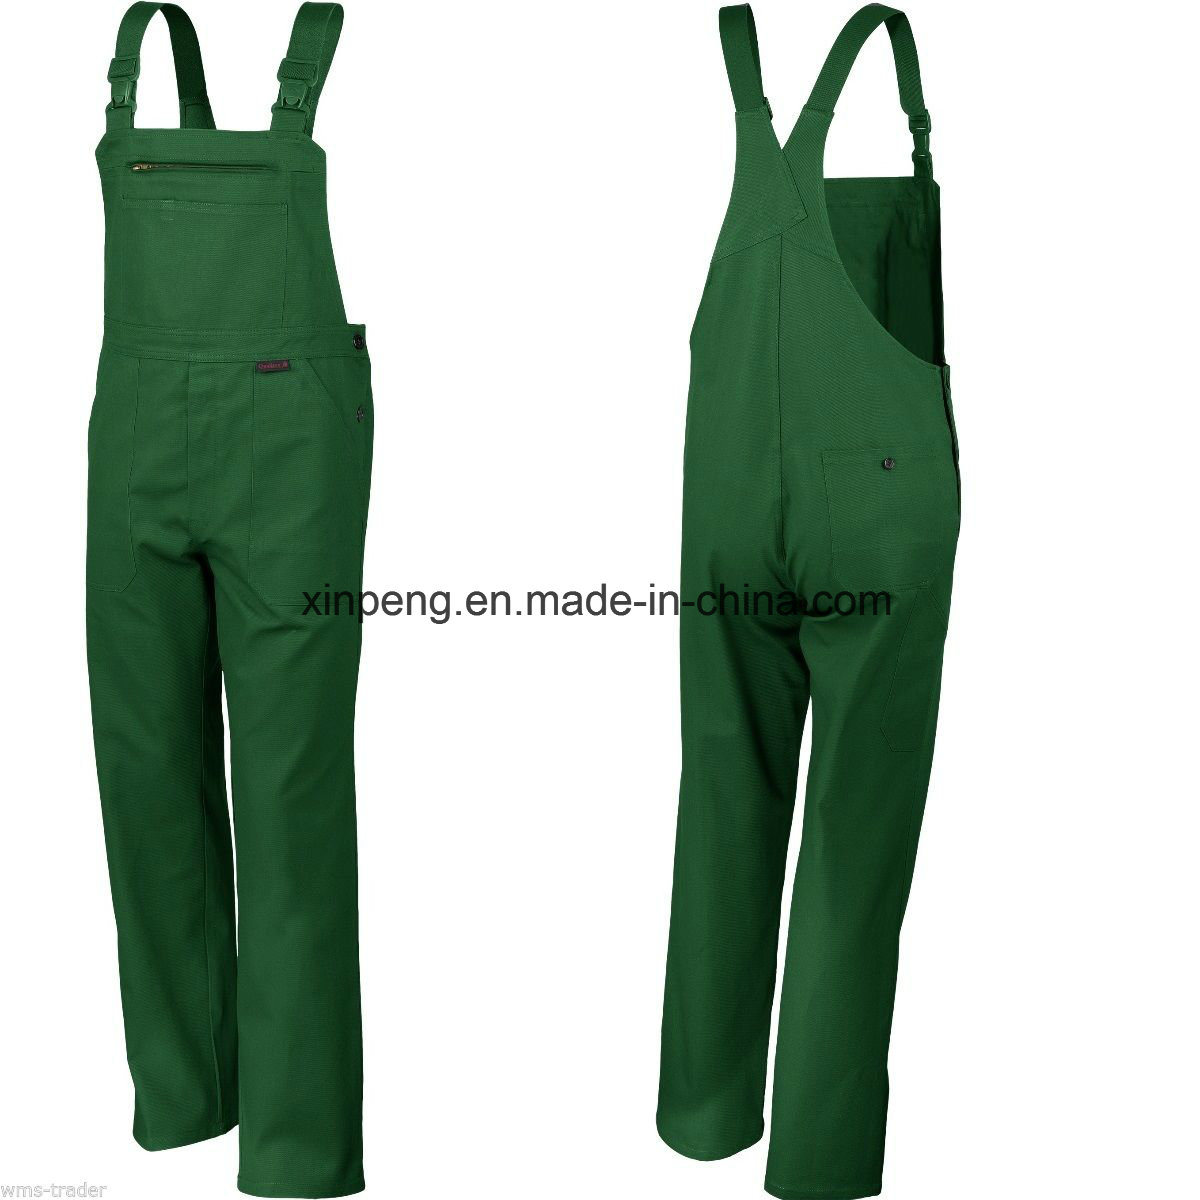 Bib-Pants High Quality Overall Workwear